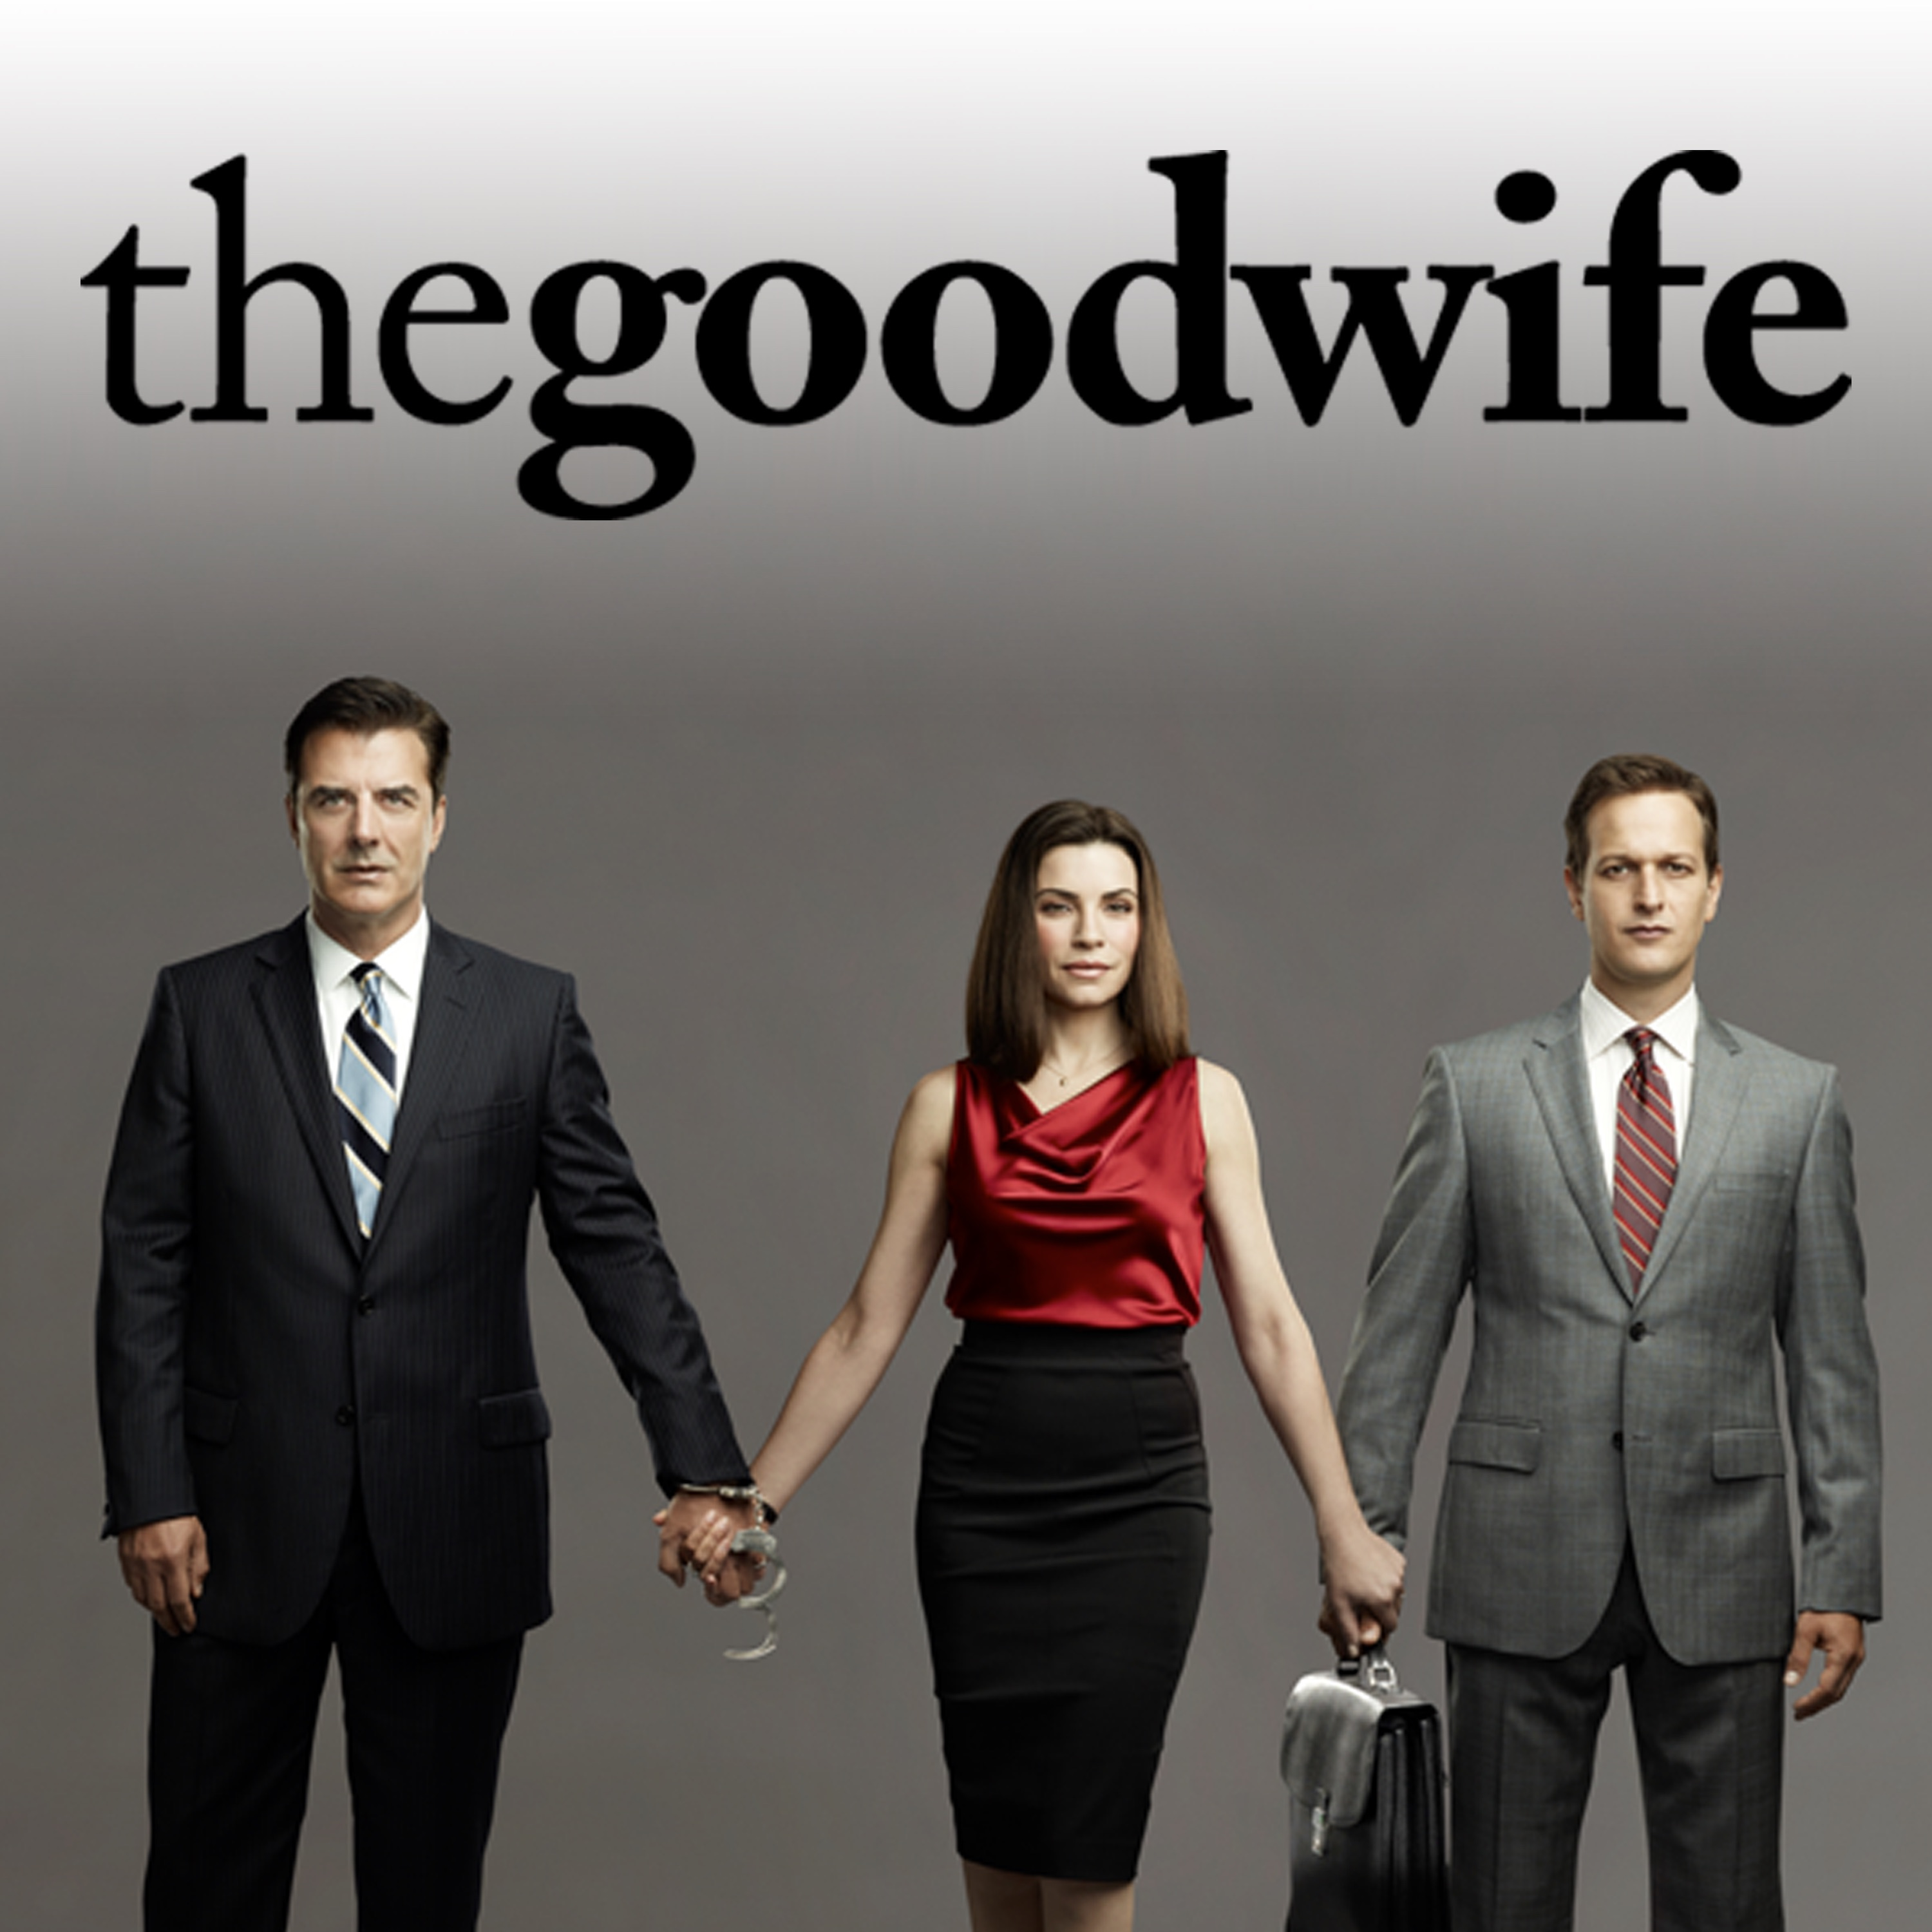 Goodwife